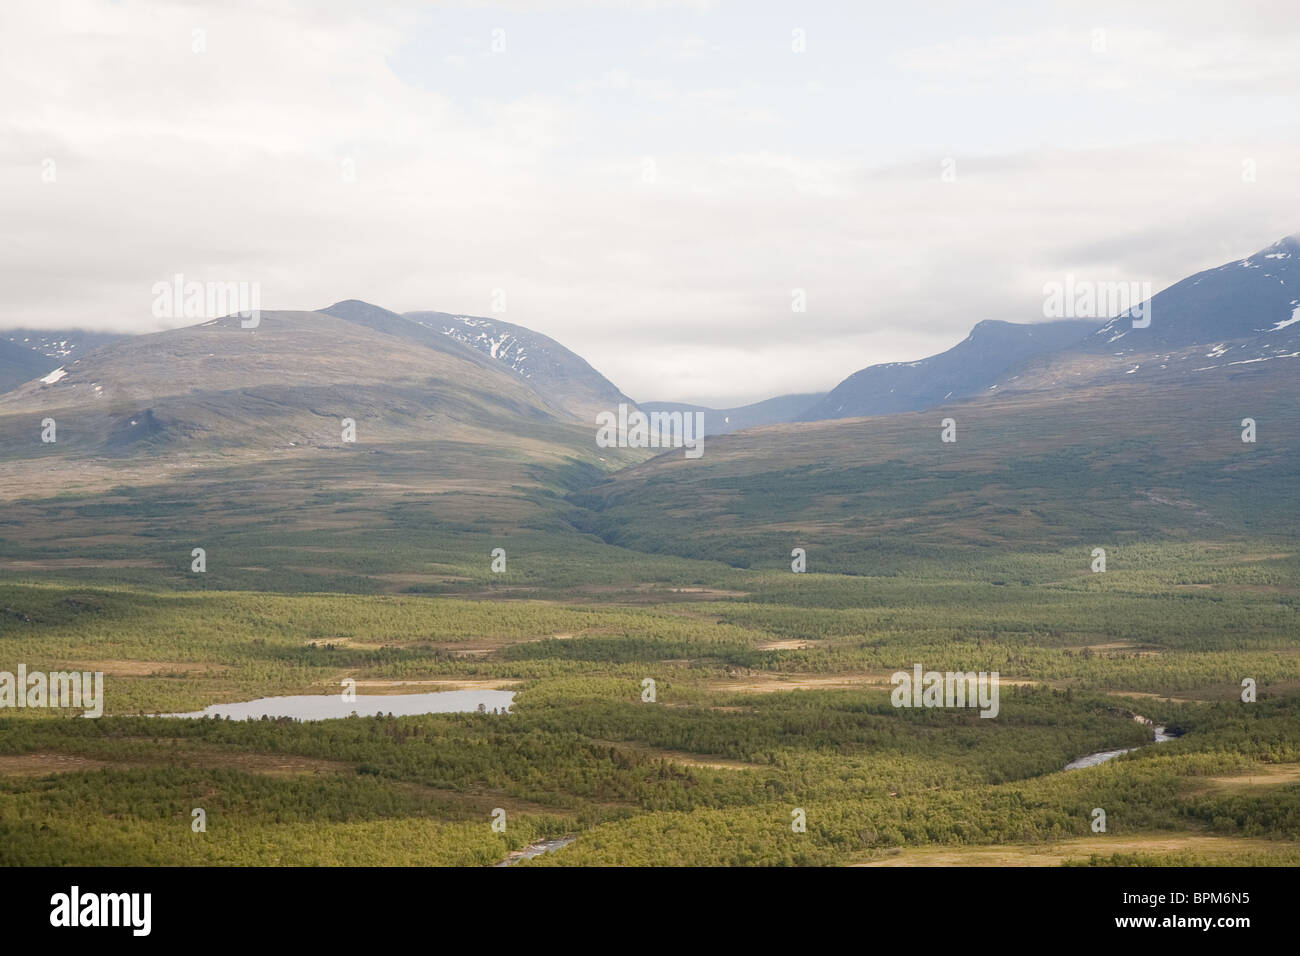 View of the Abisko National Park in northern Sweden - Stock Image